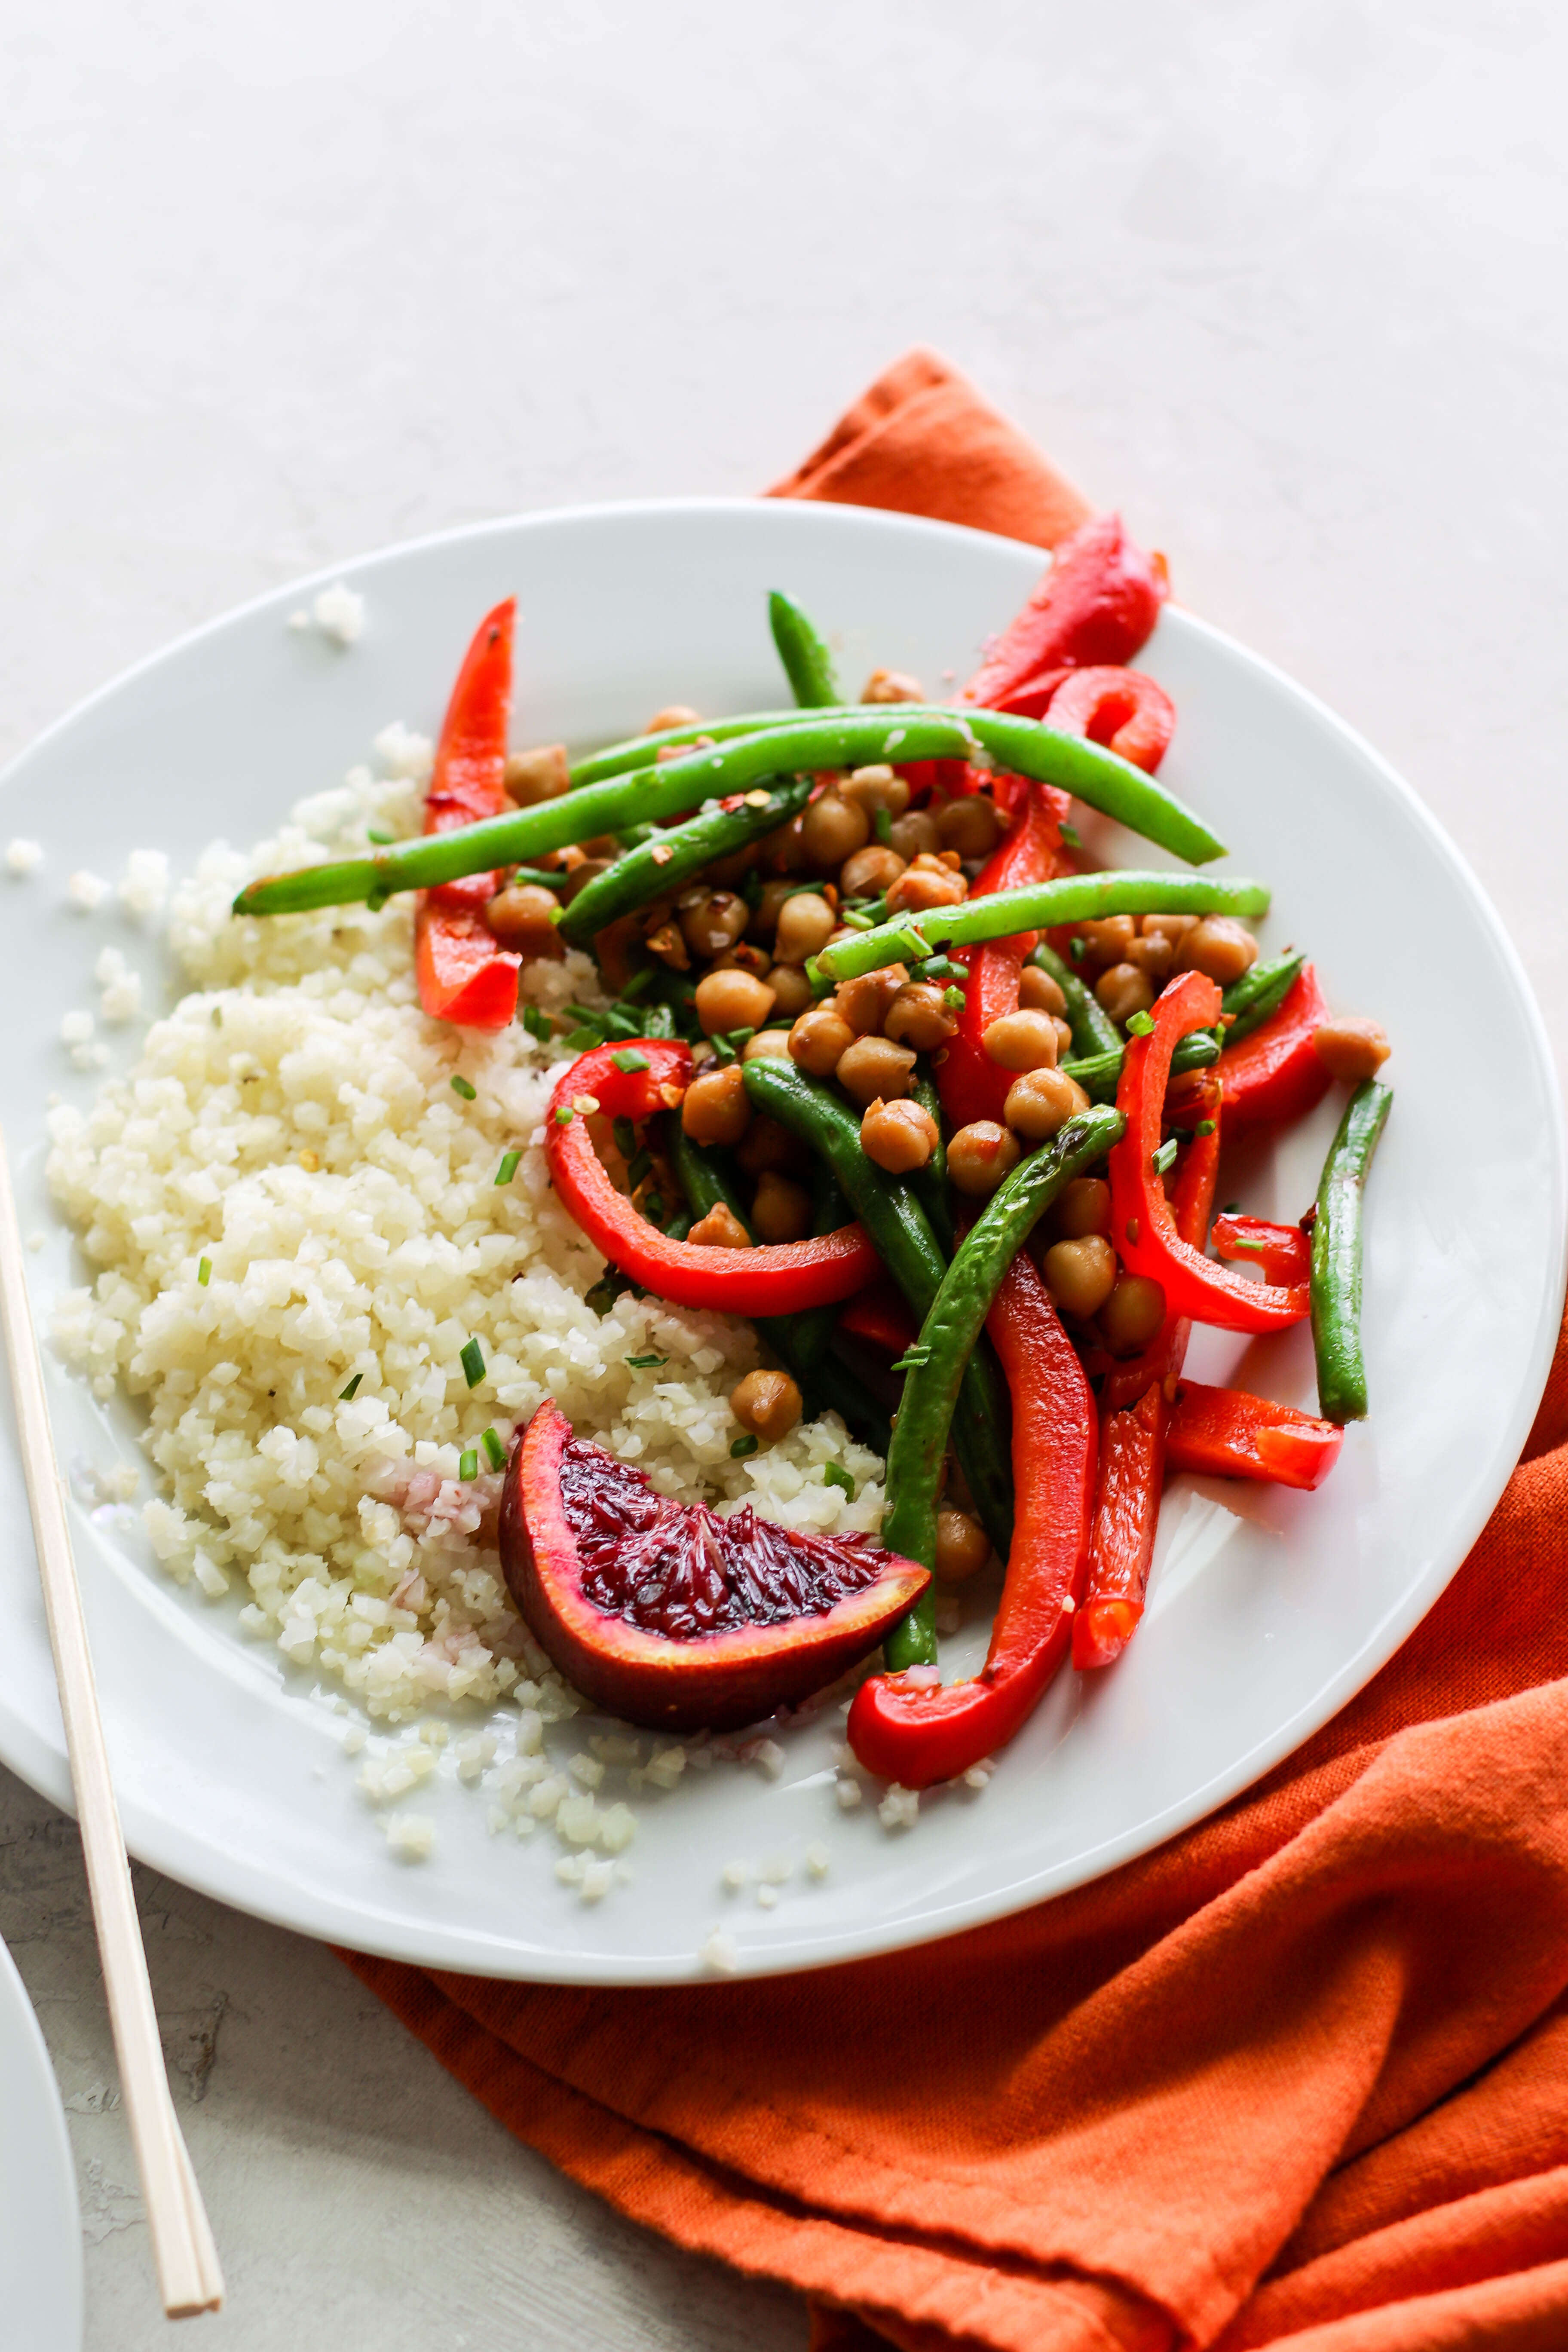 Vegan Orange Chickpea Stir Fry